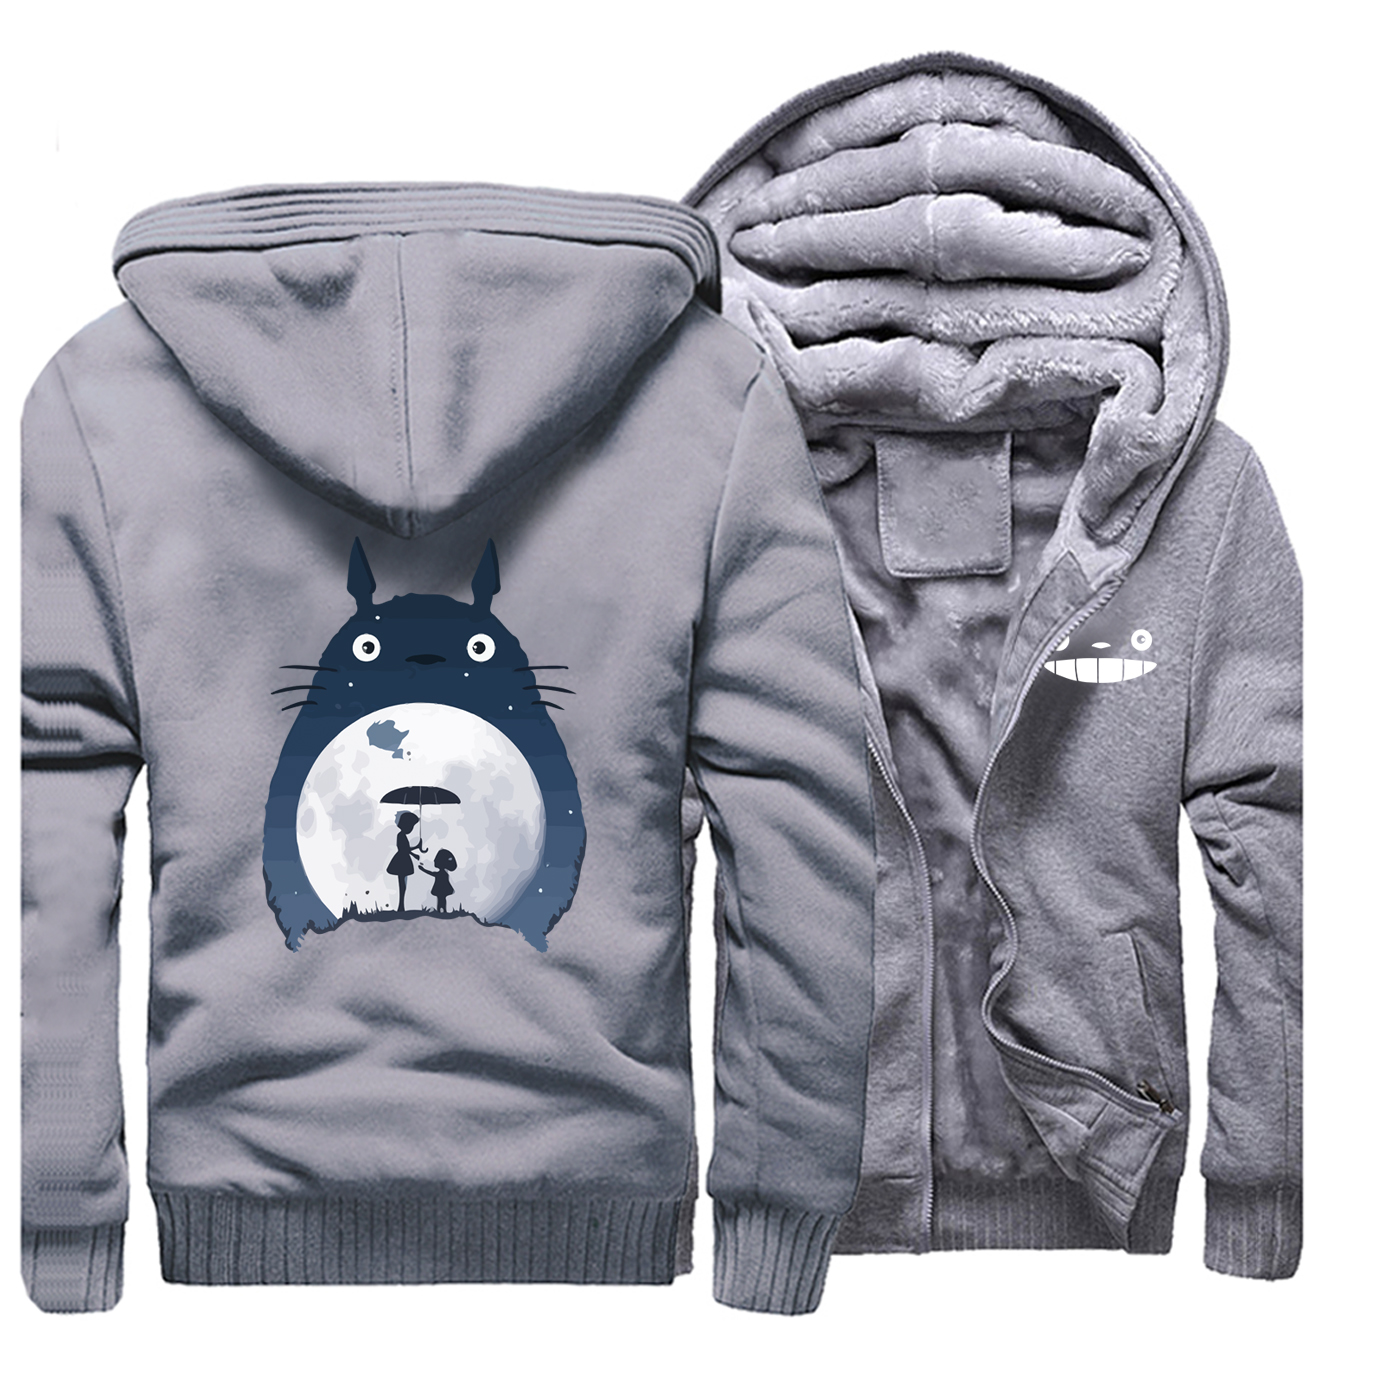 Image 2 - Tonari No Totoro Men Thick Fleece Hoodies Sweatshirts Brand Warm 